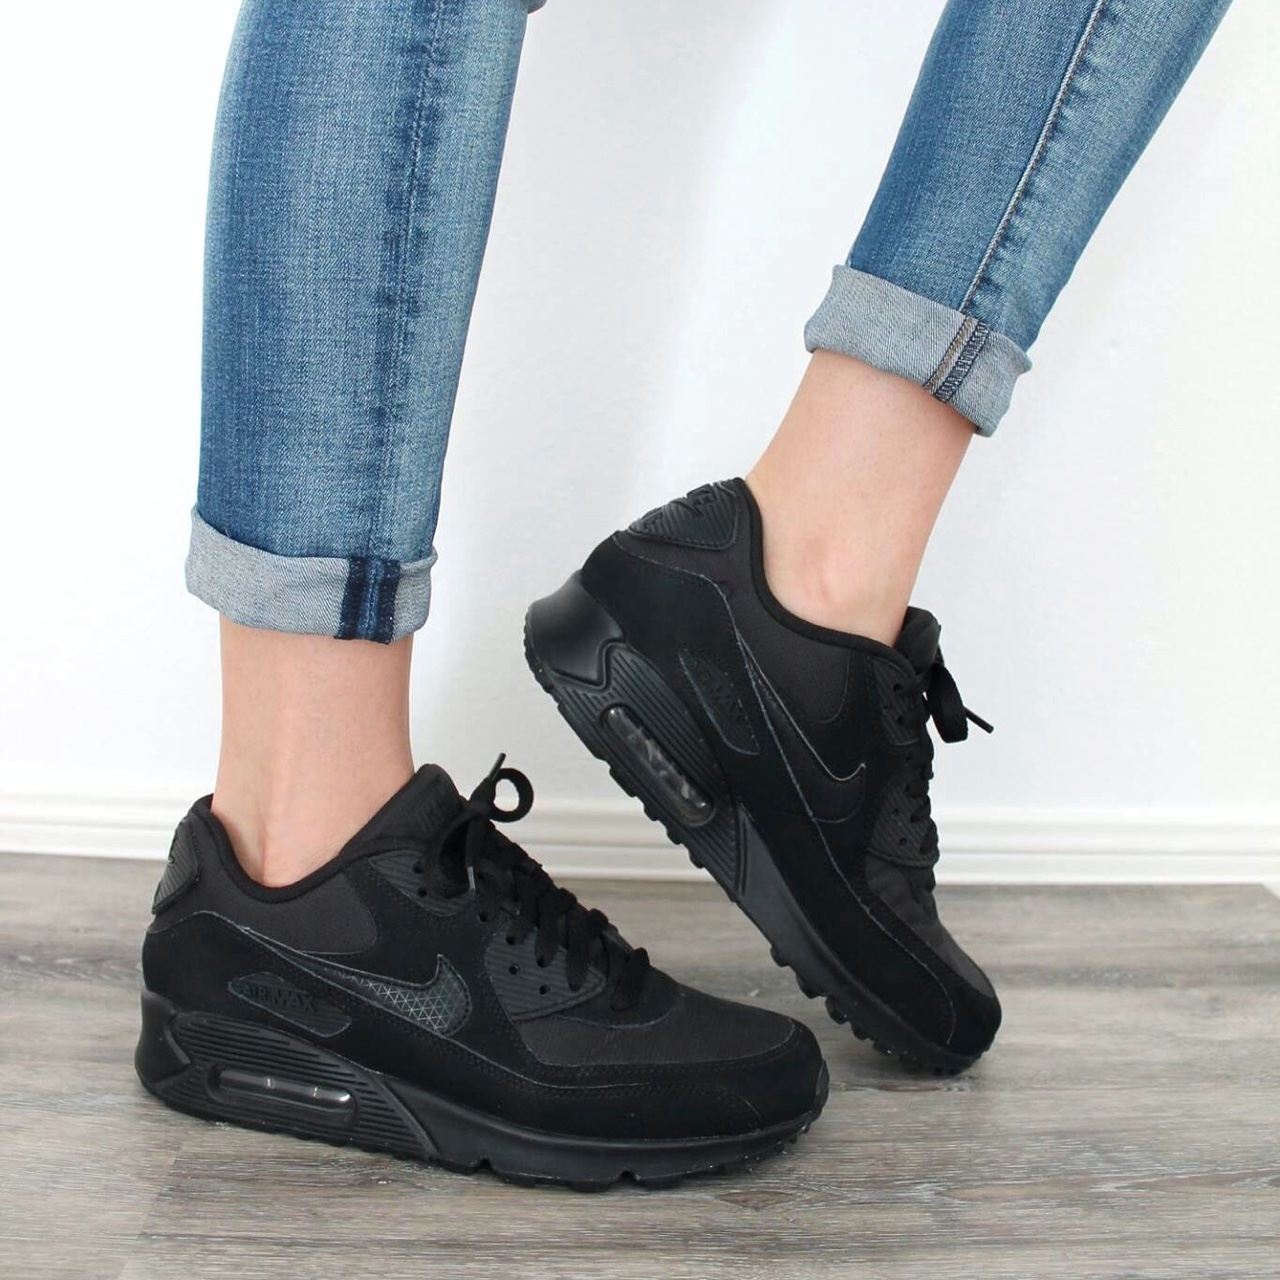 Nike Air Max 90 in all black , Size men's 7/women's...